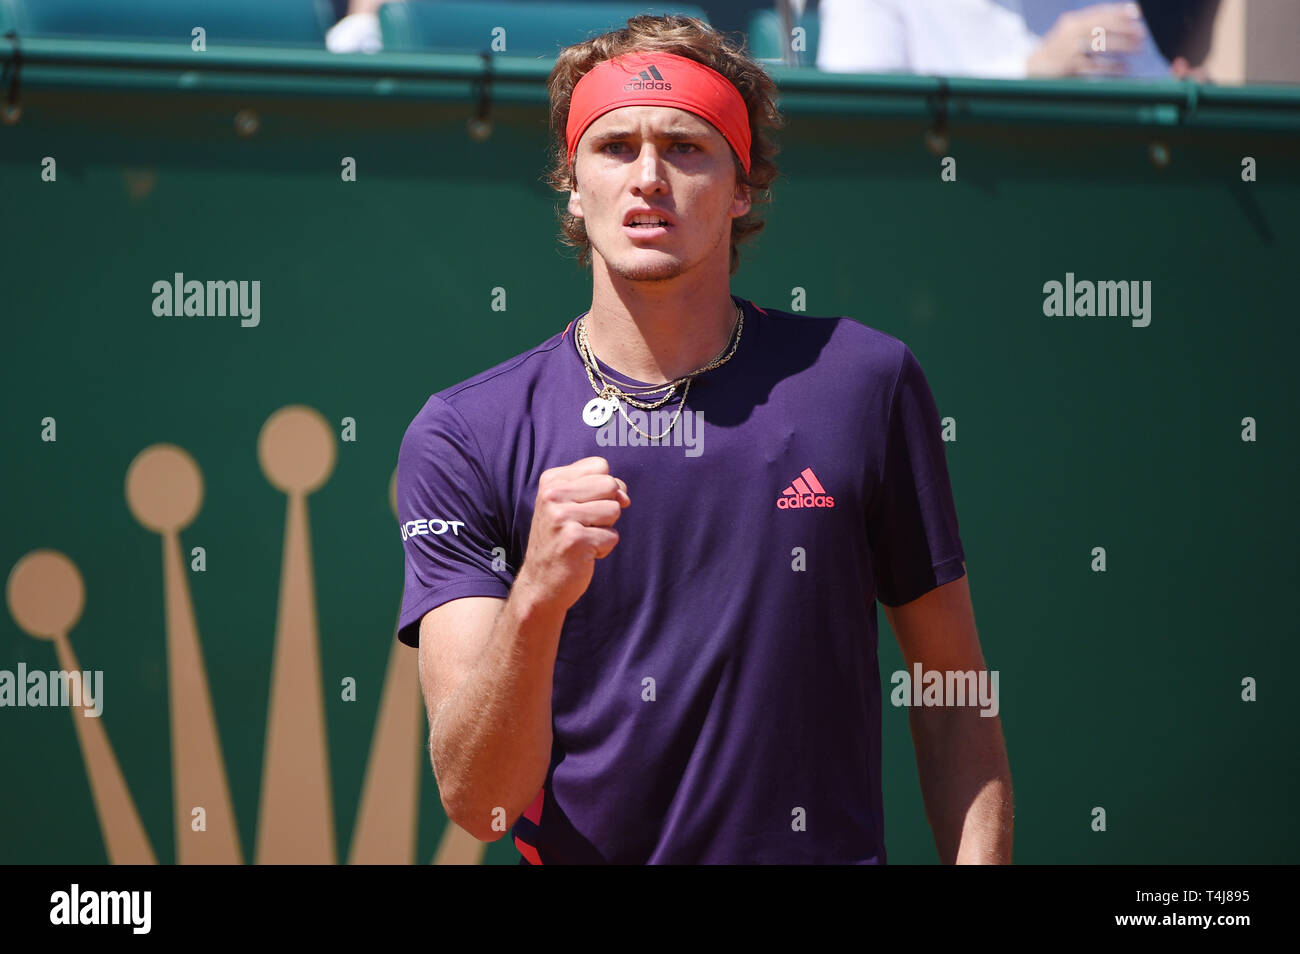 Roquebrune-Cap-Martin, France. 17th Apr, 2019. Alexander Zverev (GER) Tennis : Men's Singles 2nd Round match during Monte Carlo Masters at Monte Carlo Country Club in Roquebrune-Cap-Martin, France . Credit: Itaru Chiba/AFLO/Alamy Live News Stock Photo